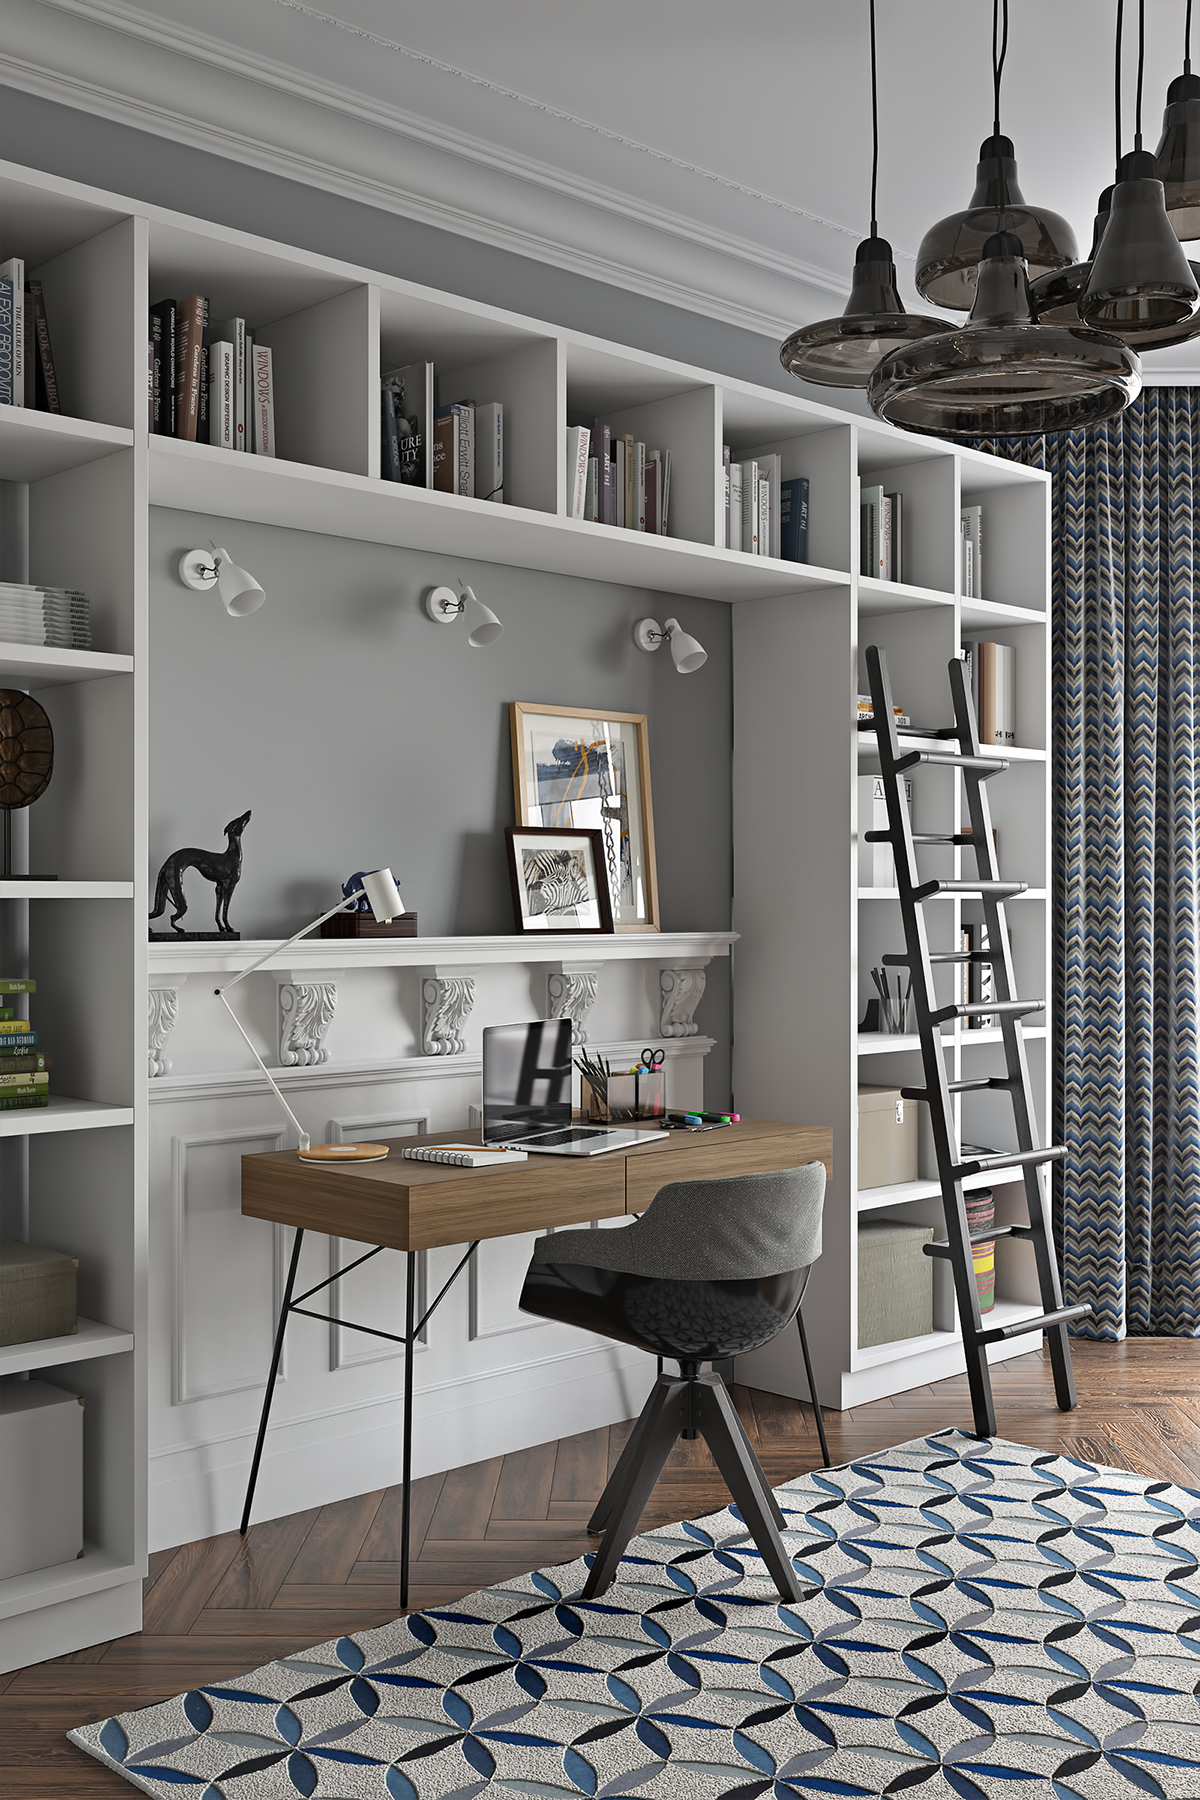 Residential Interior Project Has Modern Yet Vintage Take: Cold Eclectic Apt. (april 2016) On Behance